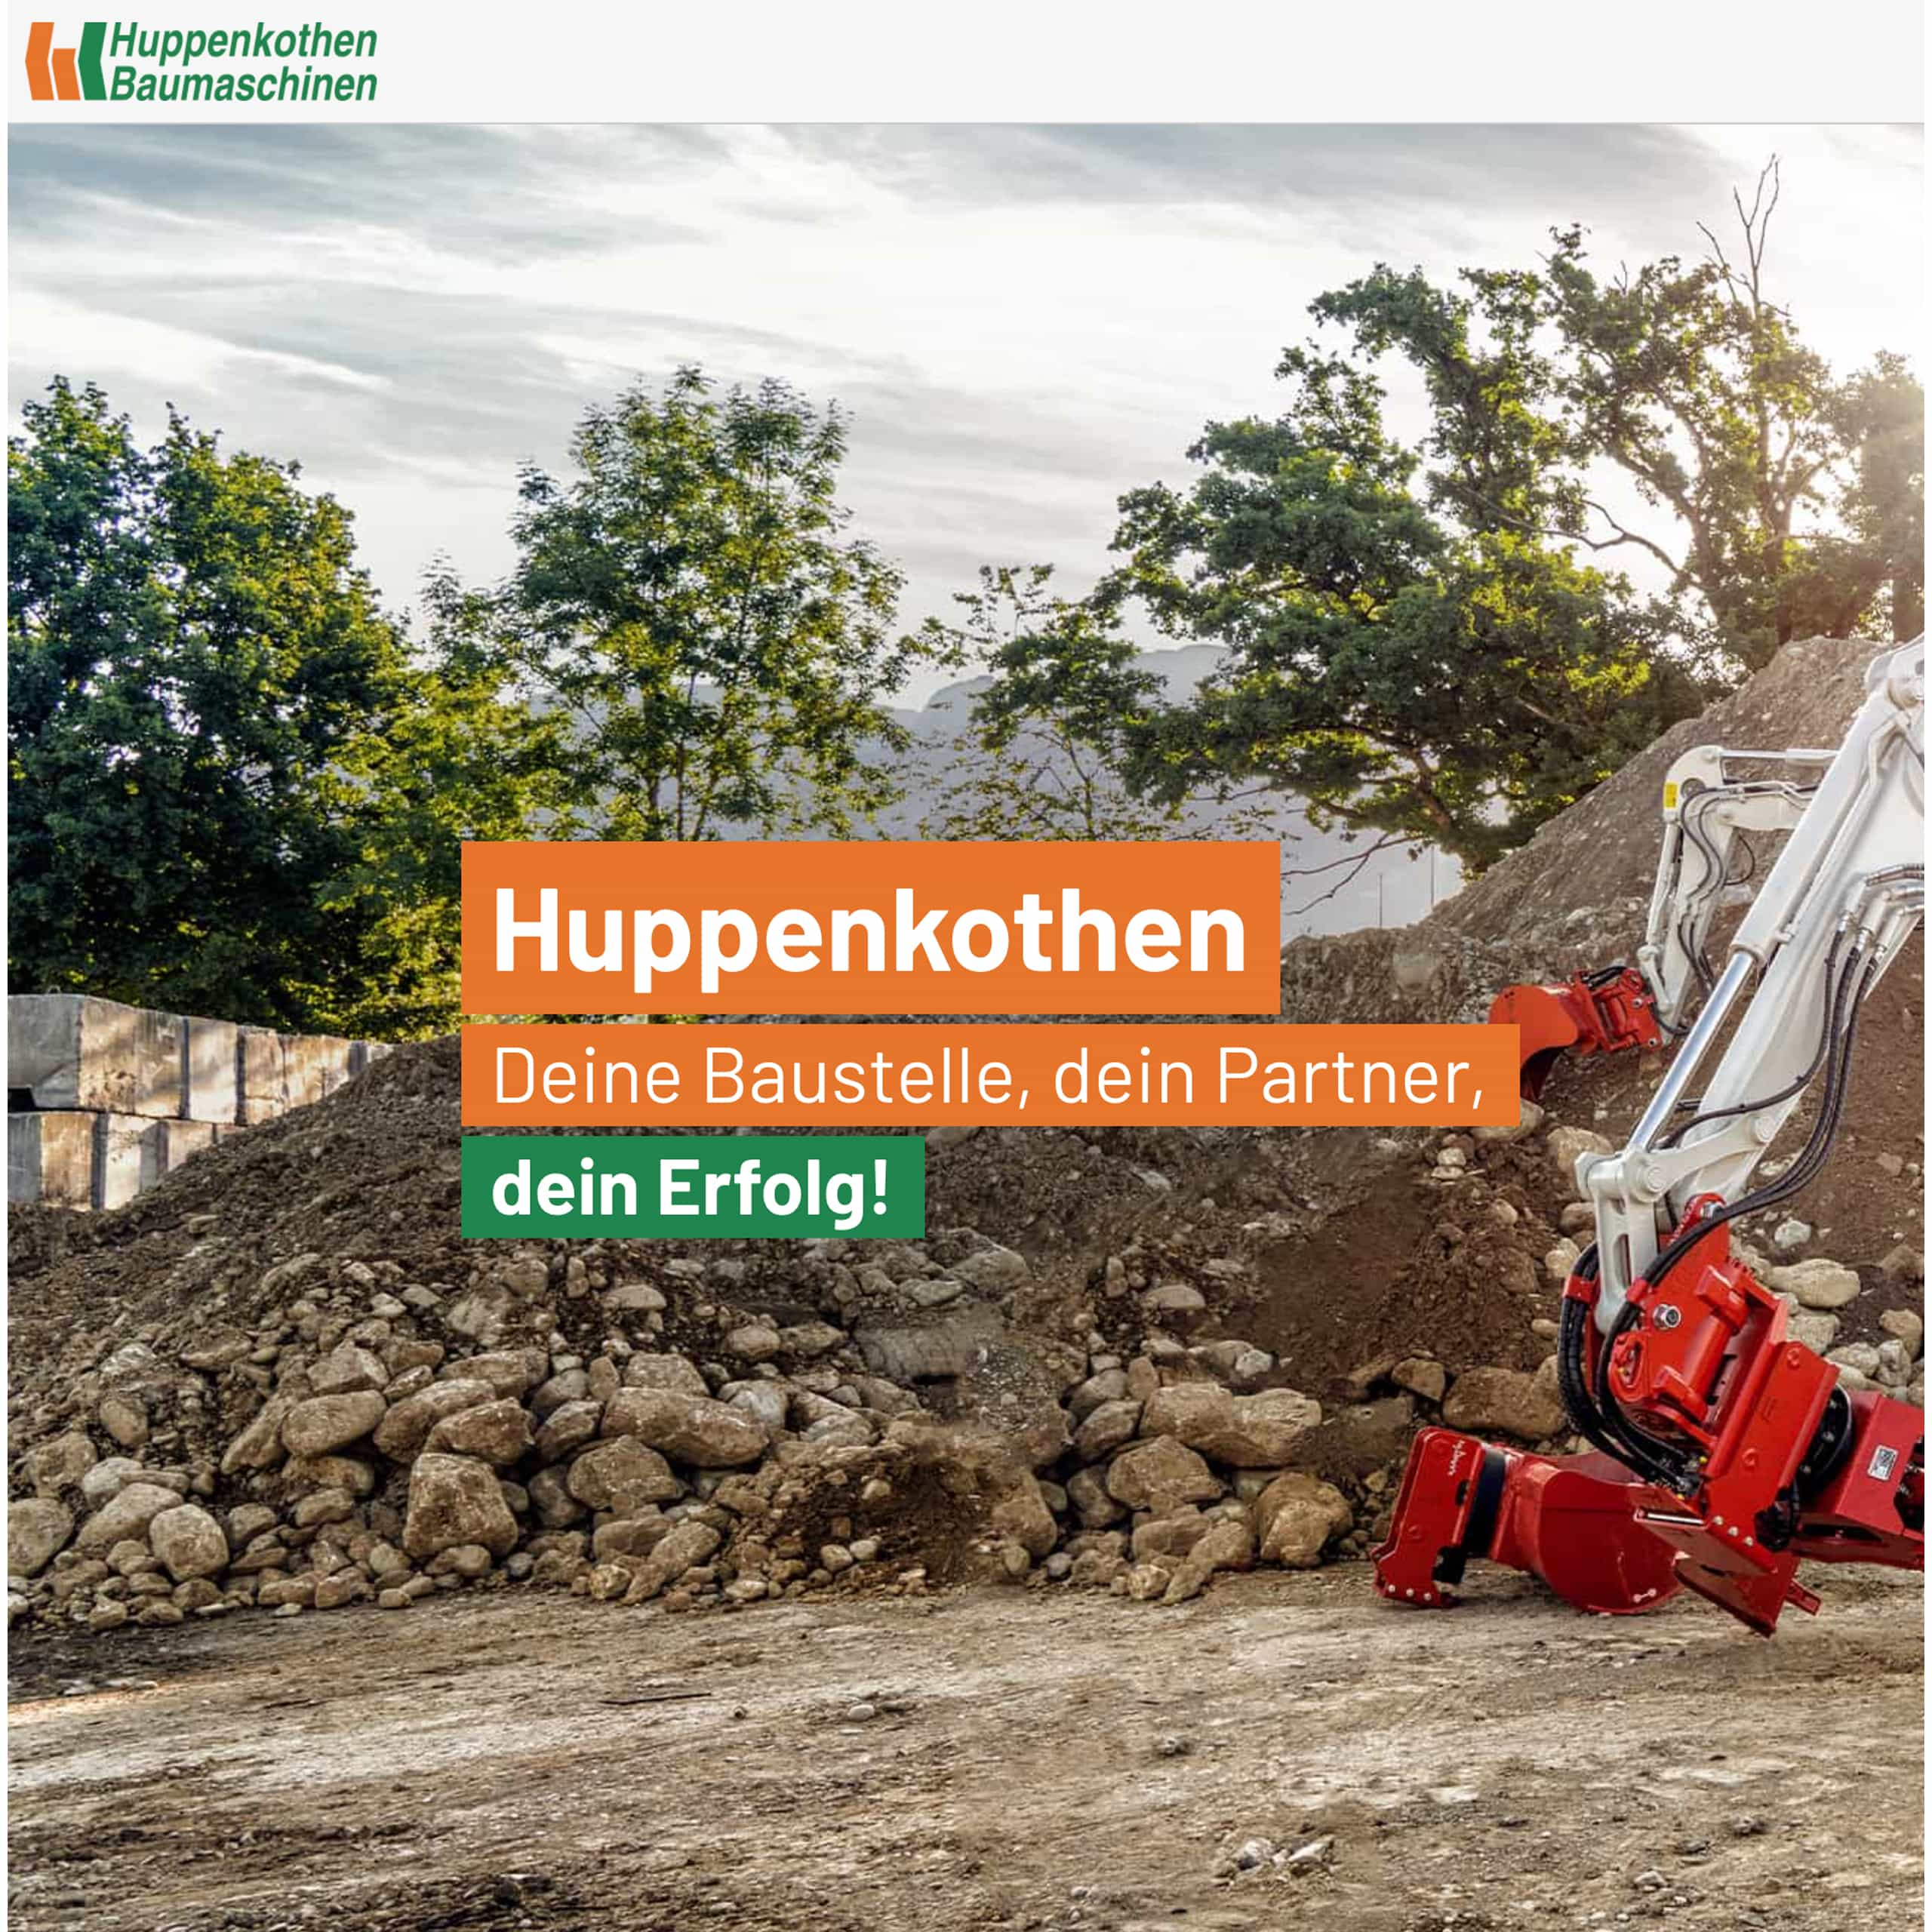 The new Huppenkothen website